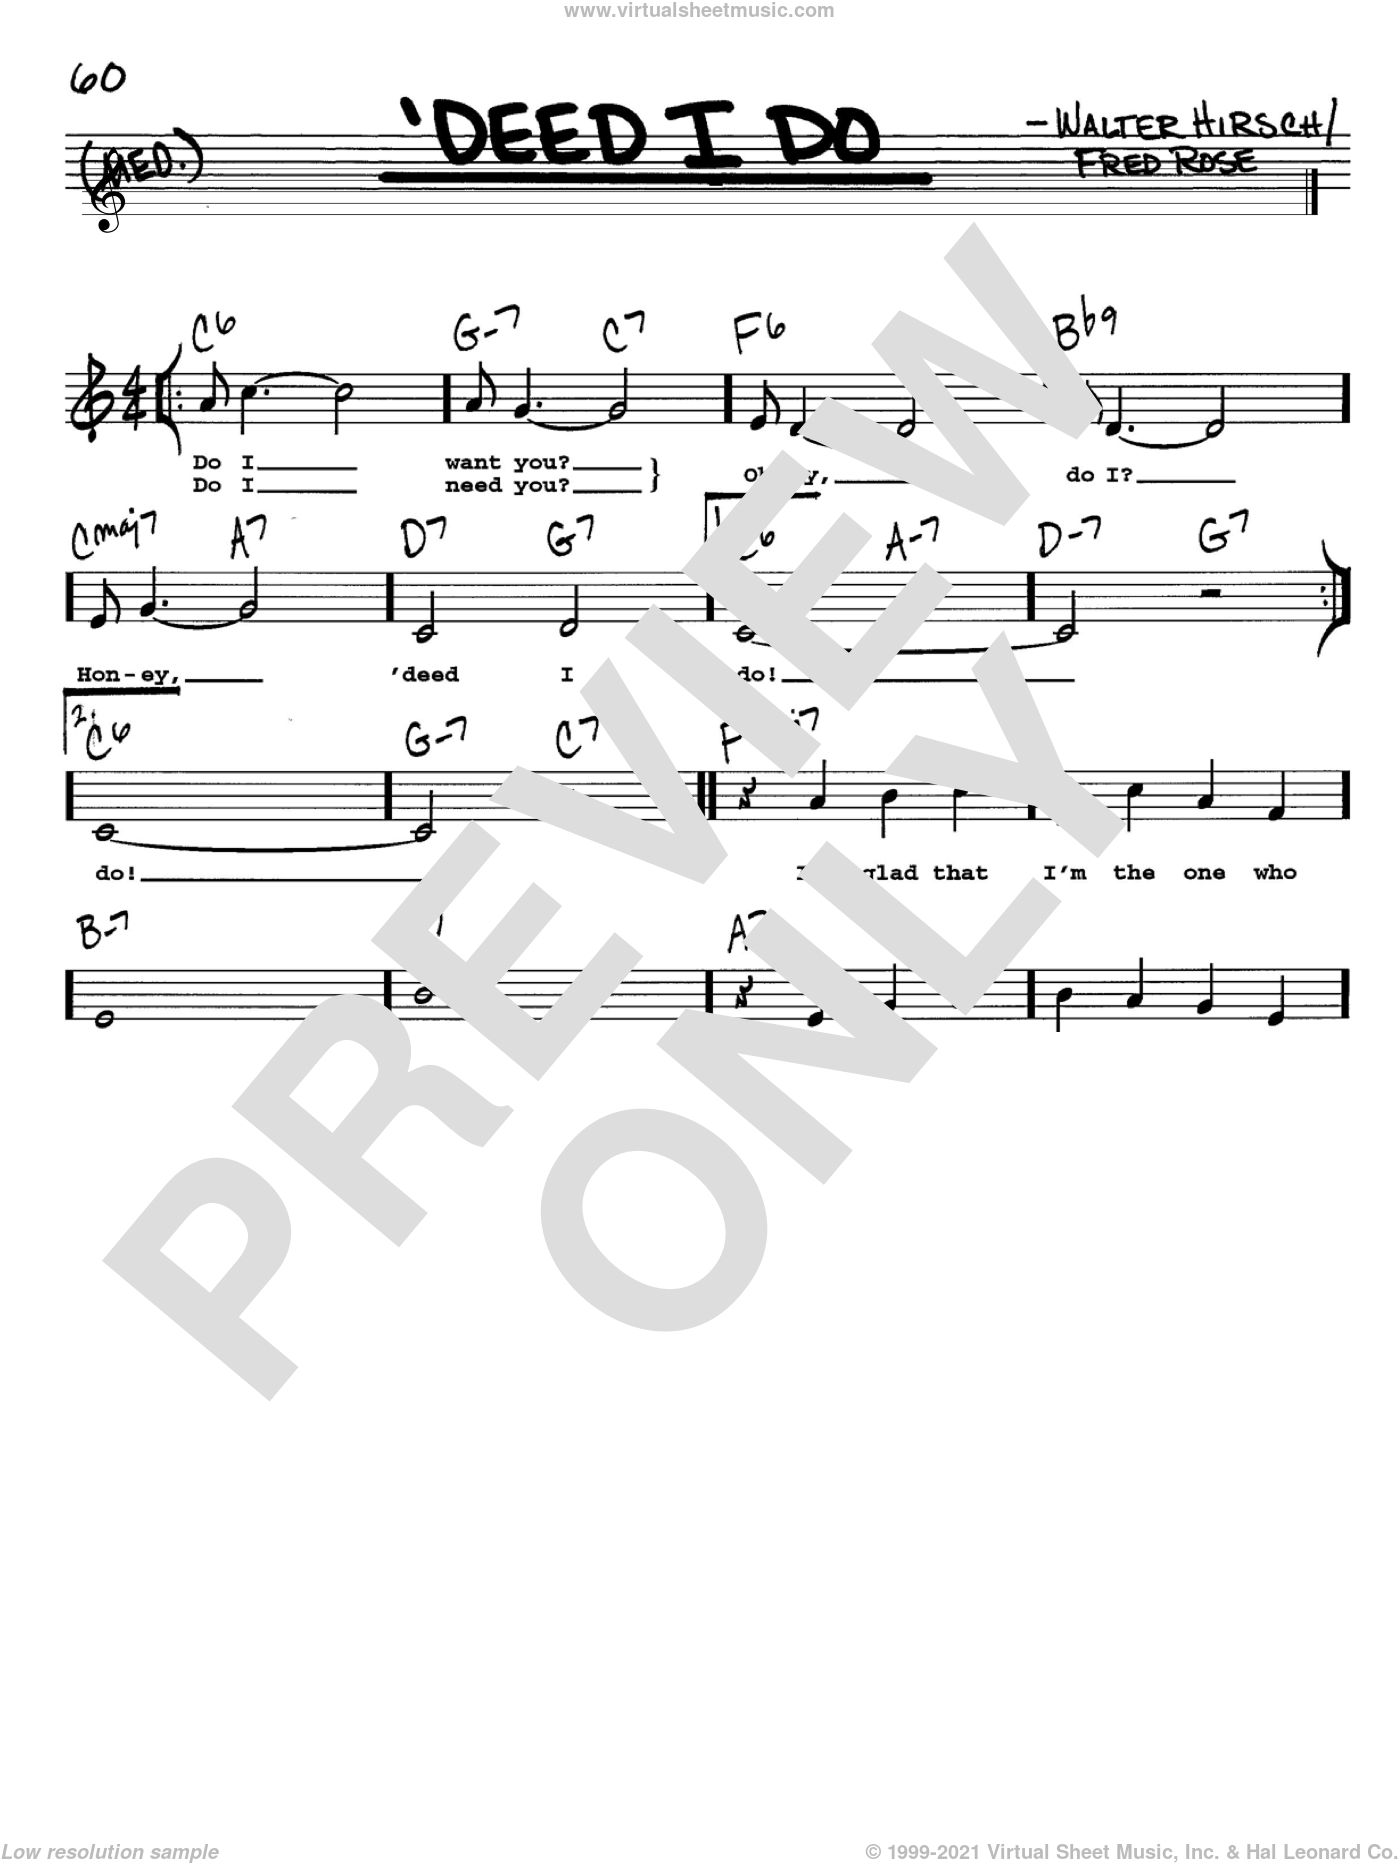 'Deed I Do sheet music for voice and other instruments (Vocal Volume 2) by Walter Hirsch, Diana Krall and Fred Rose. Score Image Preview.